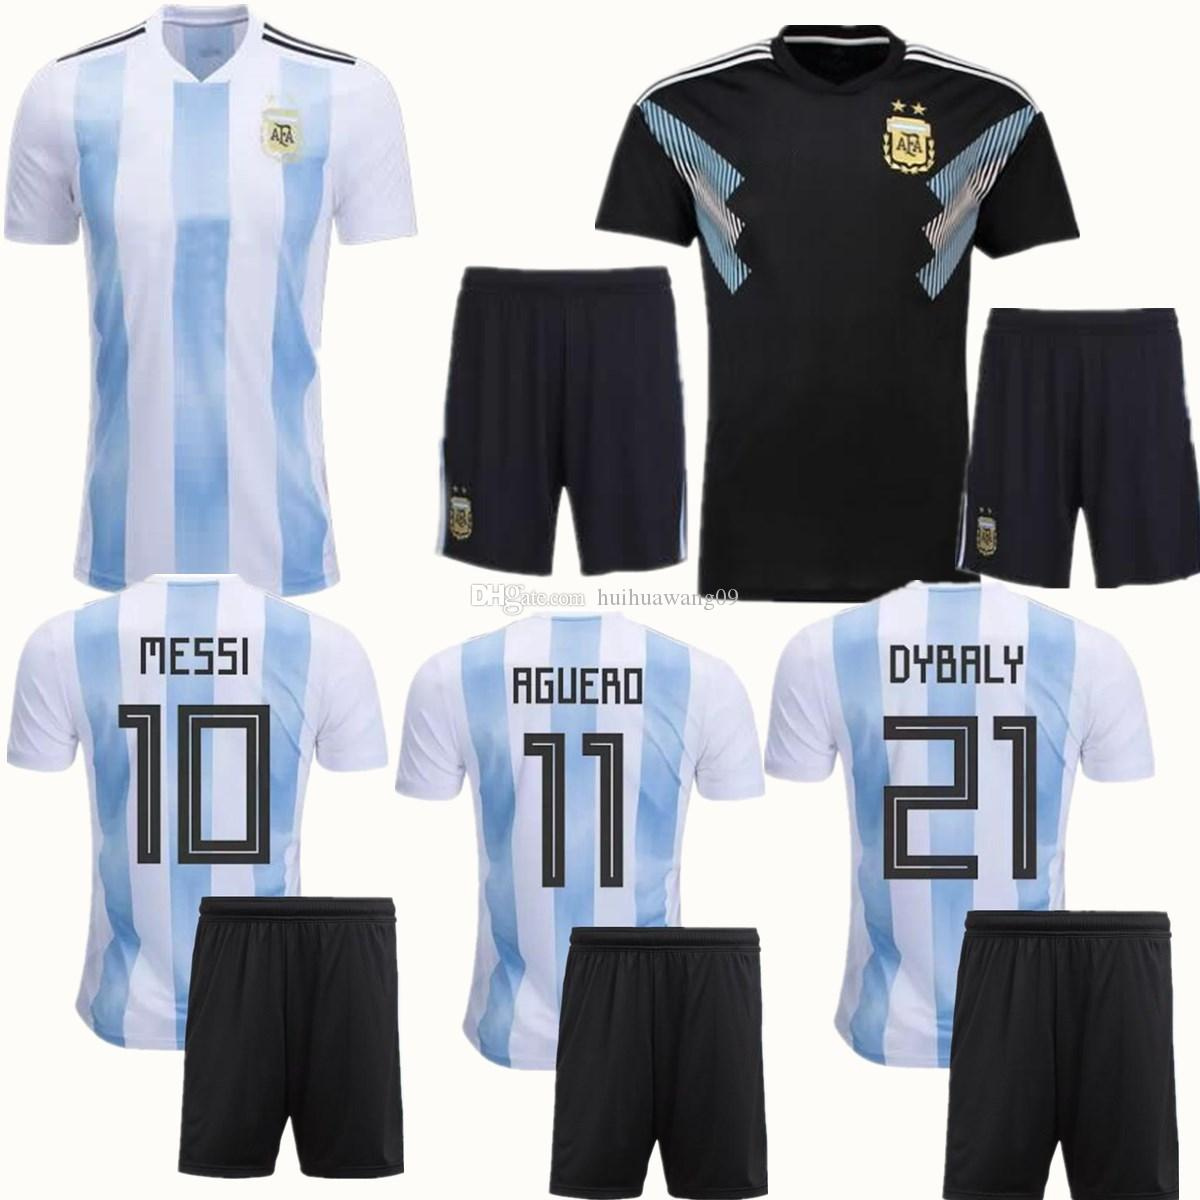 63f00c38c 2019 2018 World Cup Argentina Away Soccer Sets MESSI DI MARIA AGUERO  KOMPANY DYBALA Jersey Away Black Kit Adults Uniform Argentina Football Set  From ...